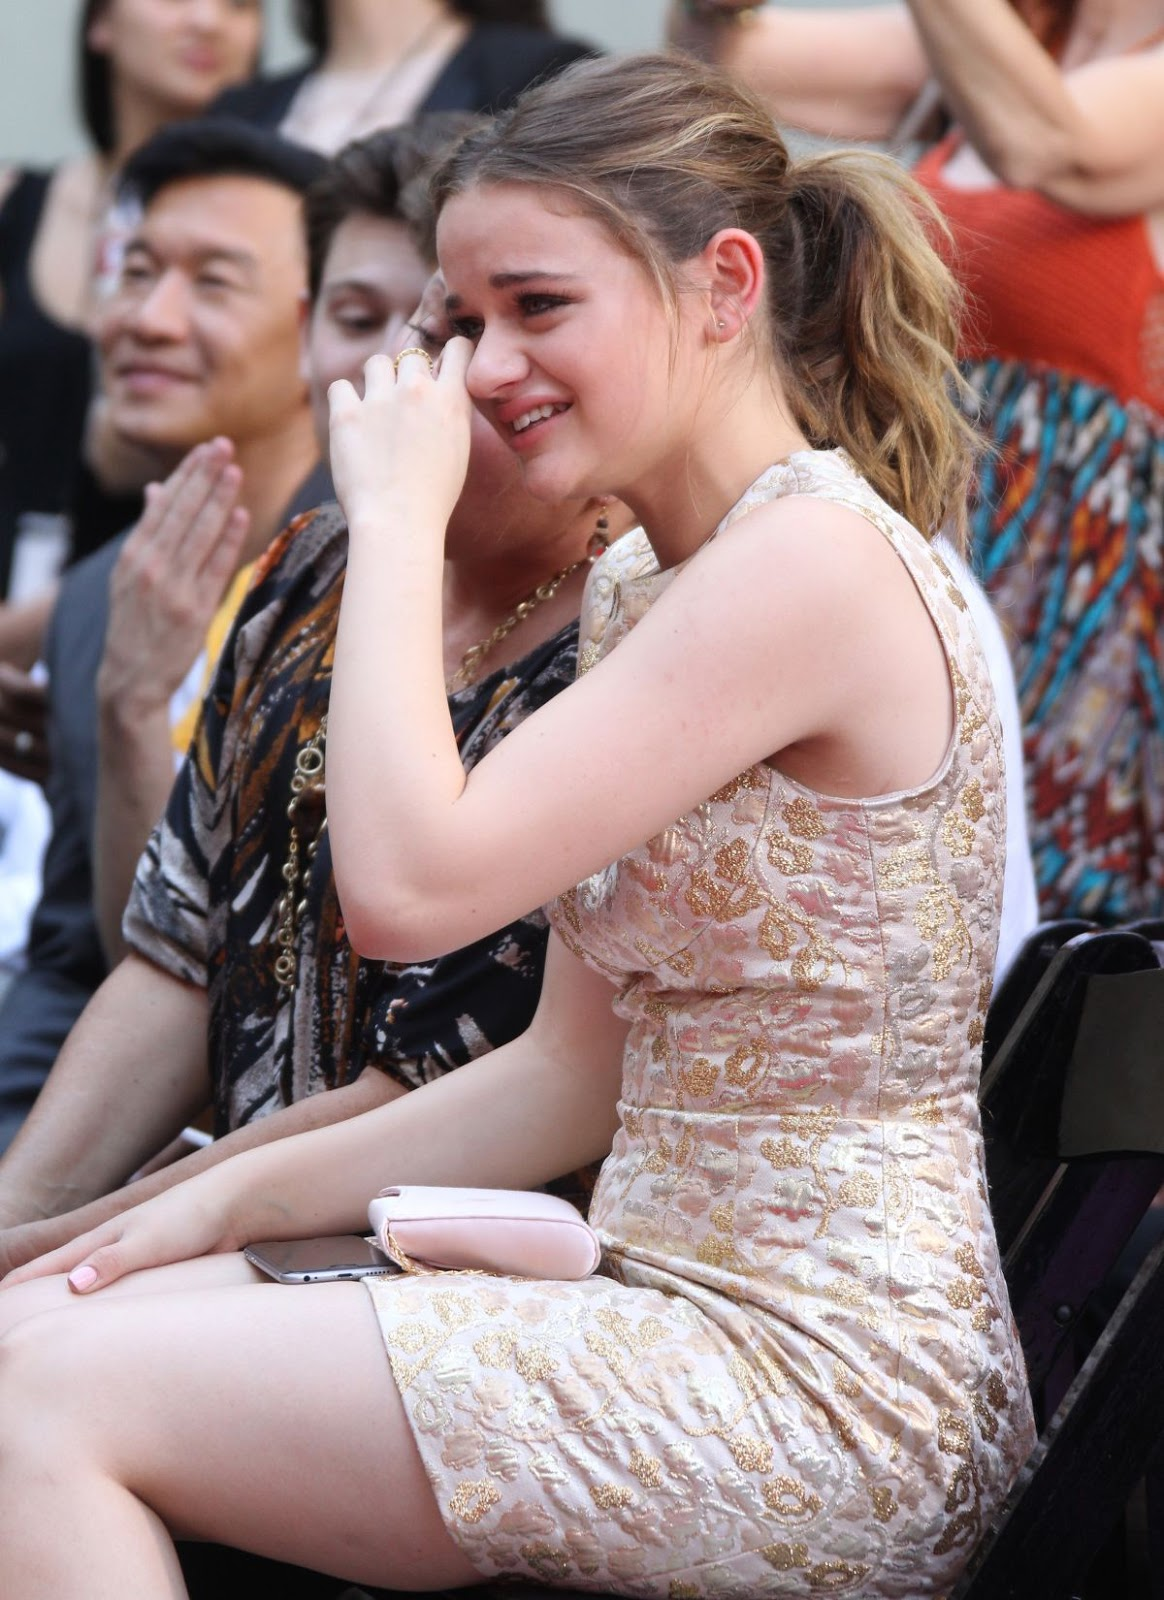 'Going in Style' actress Joey King at Roland Emmerich Hand and Footprint Ceremony in Los Angeles